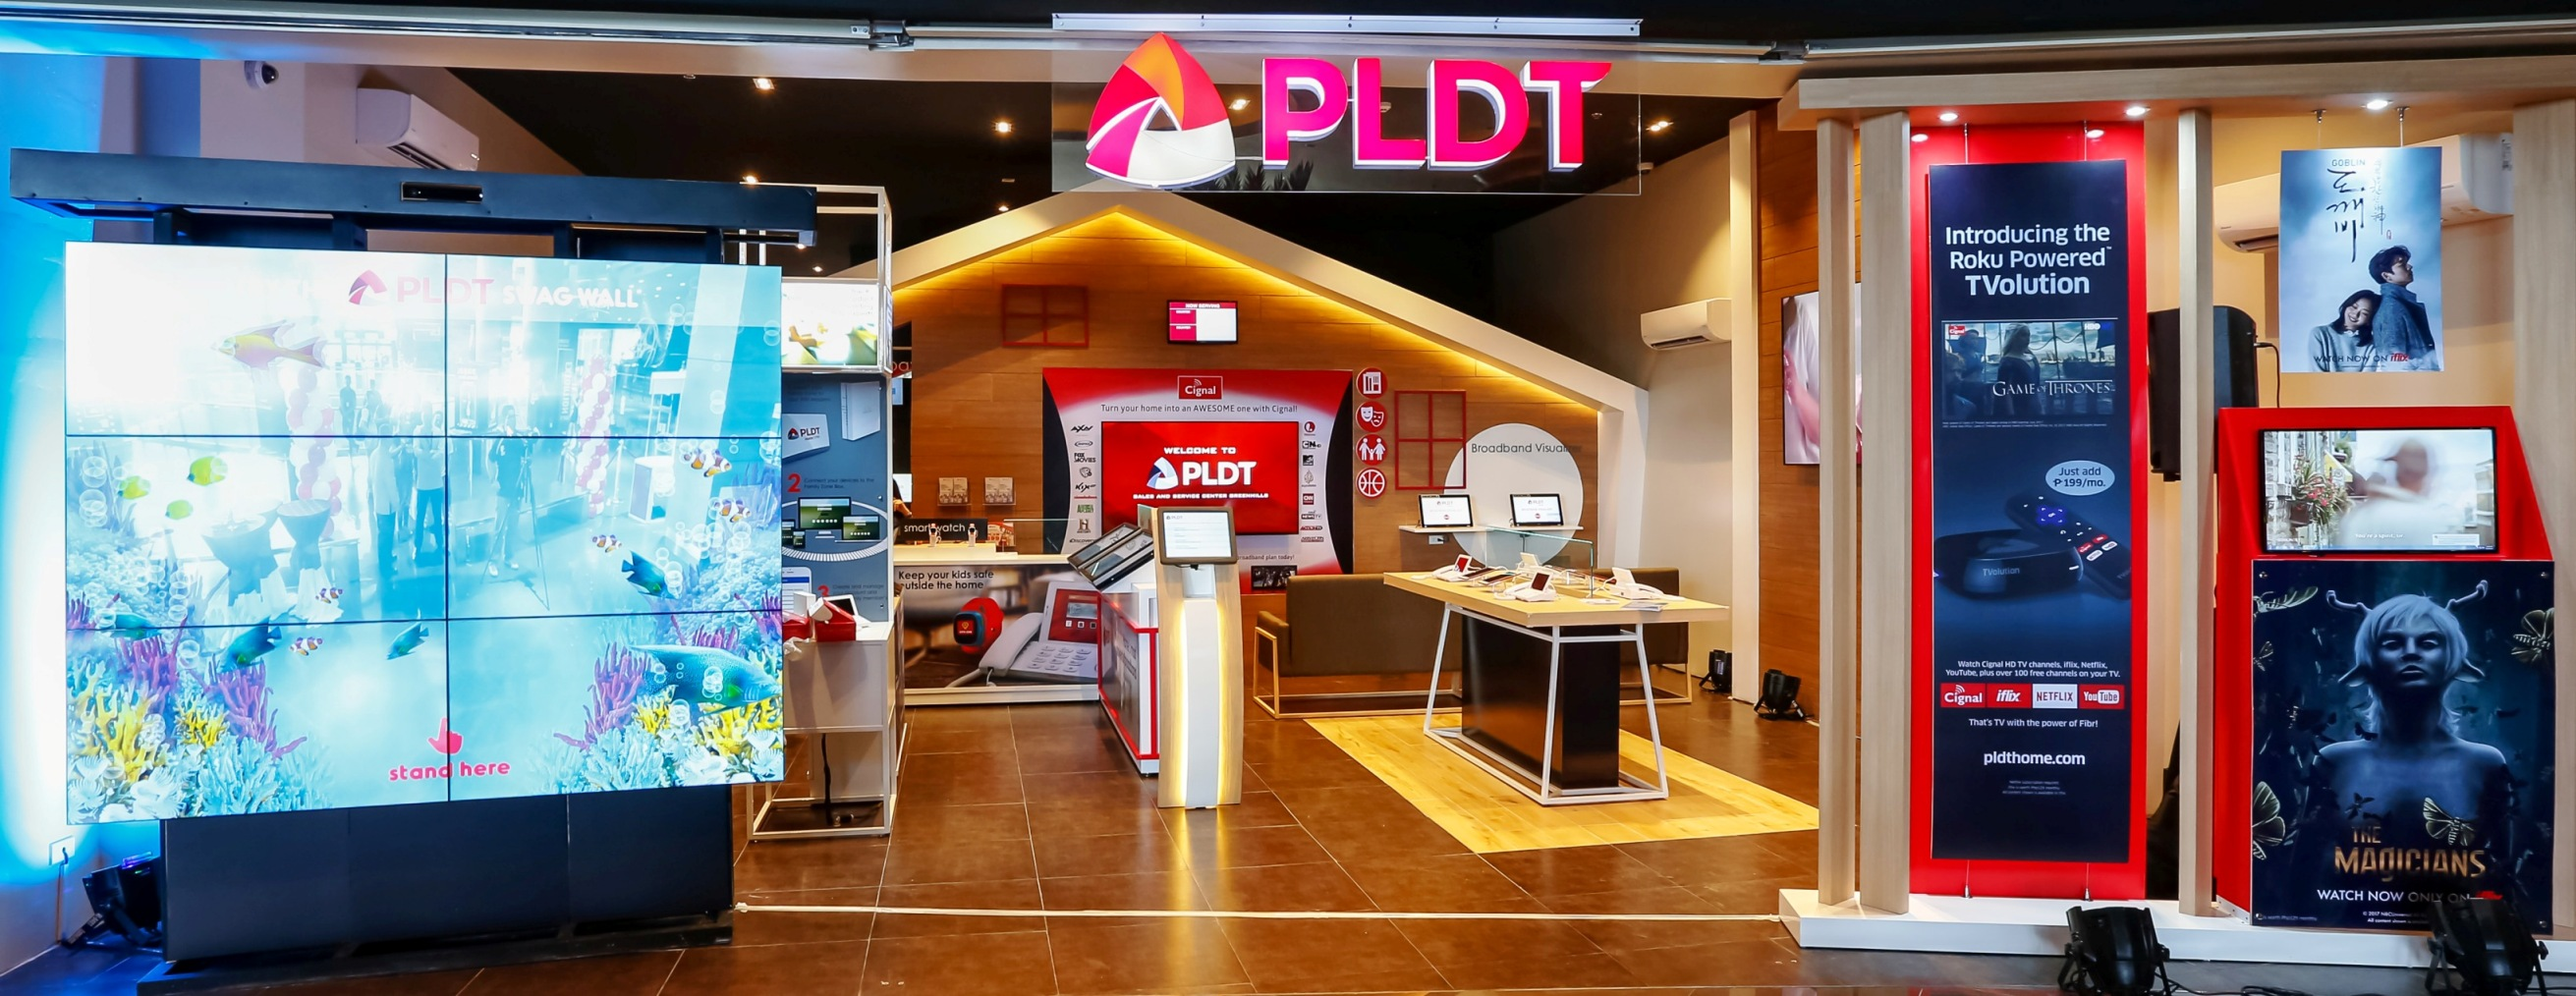 PLDT Opens First Concept Store in Metro Manila: Redefines the Boundaries of Digital Experience